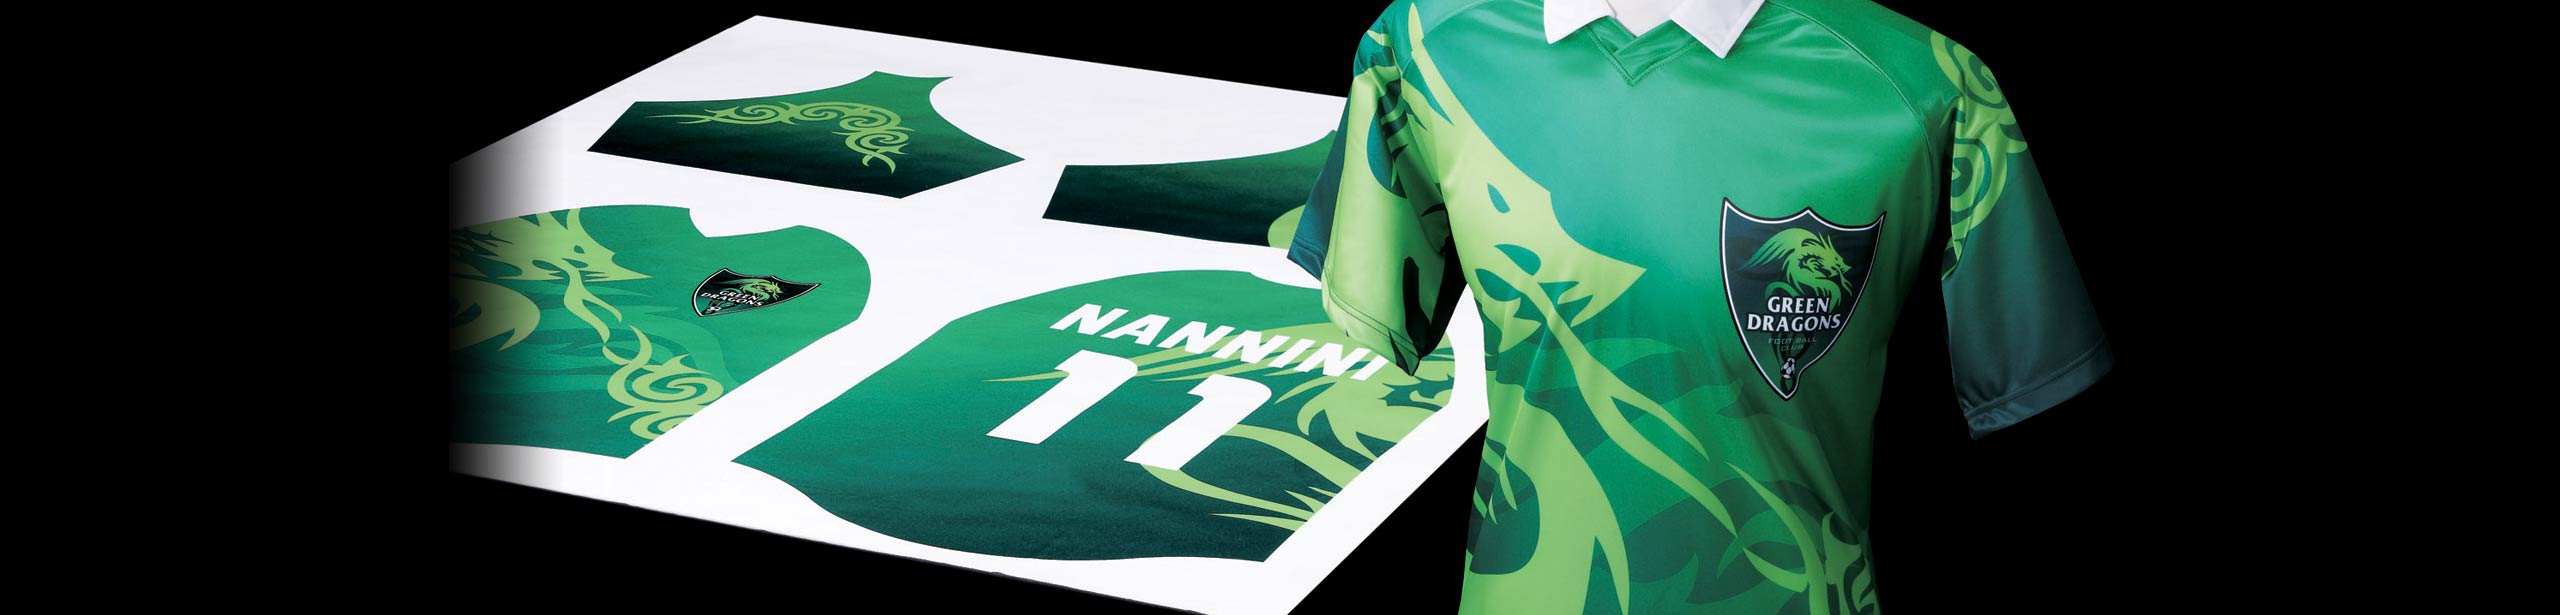 Maillot imprimé en sublimation